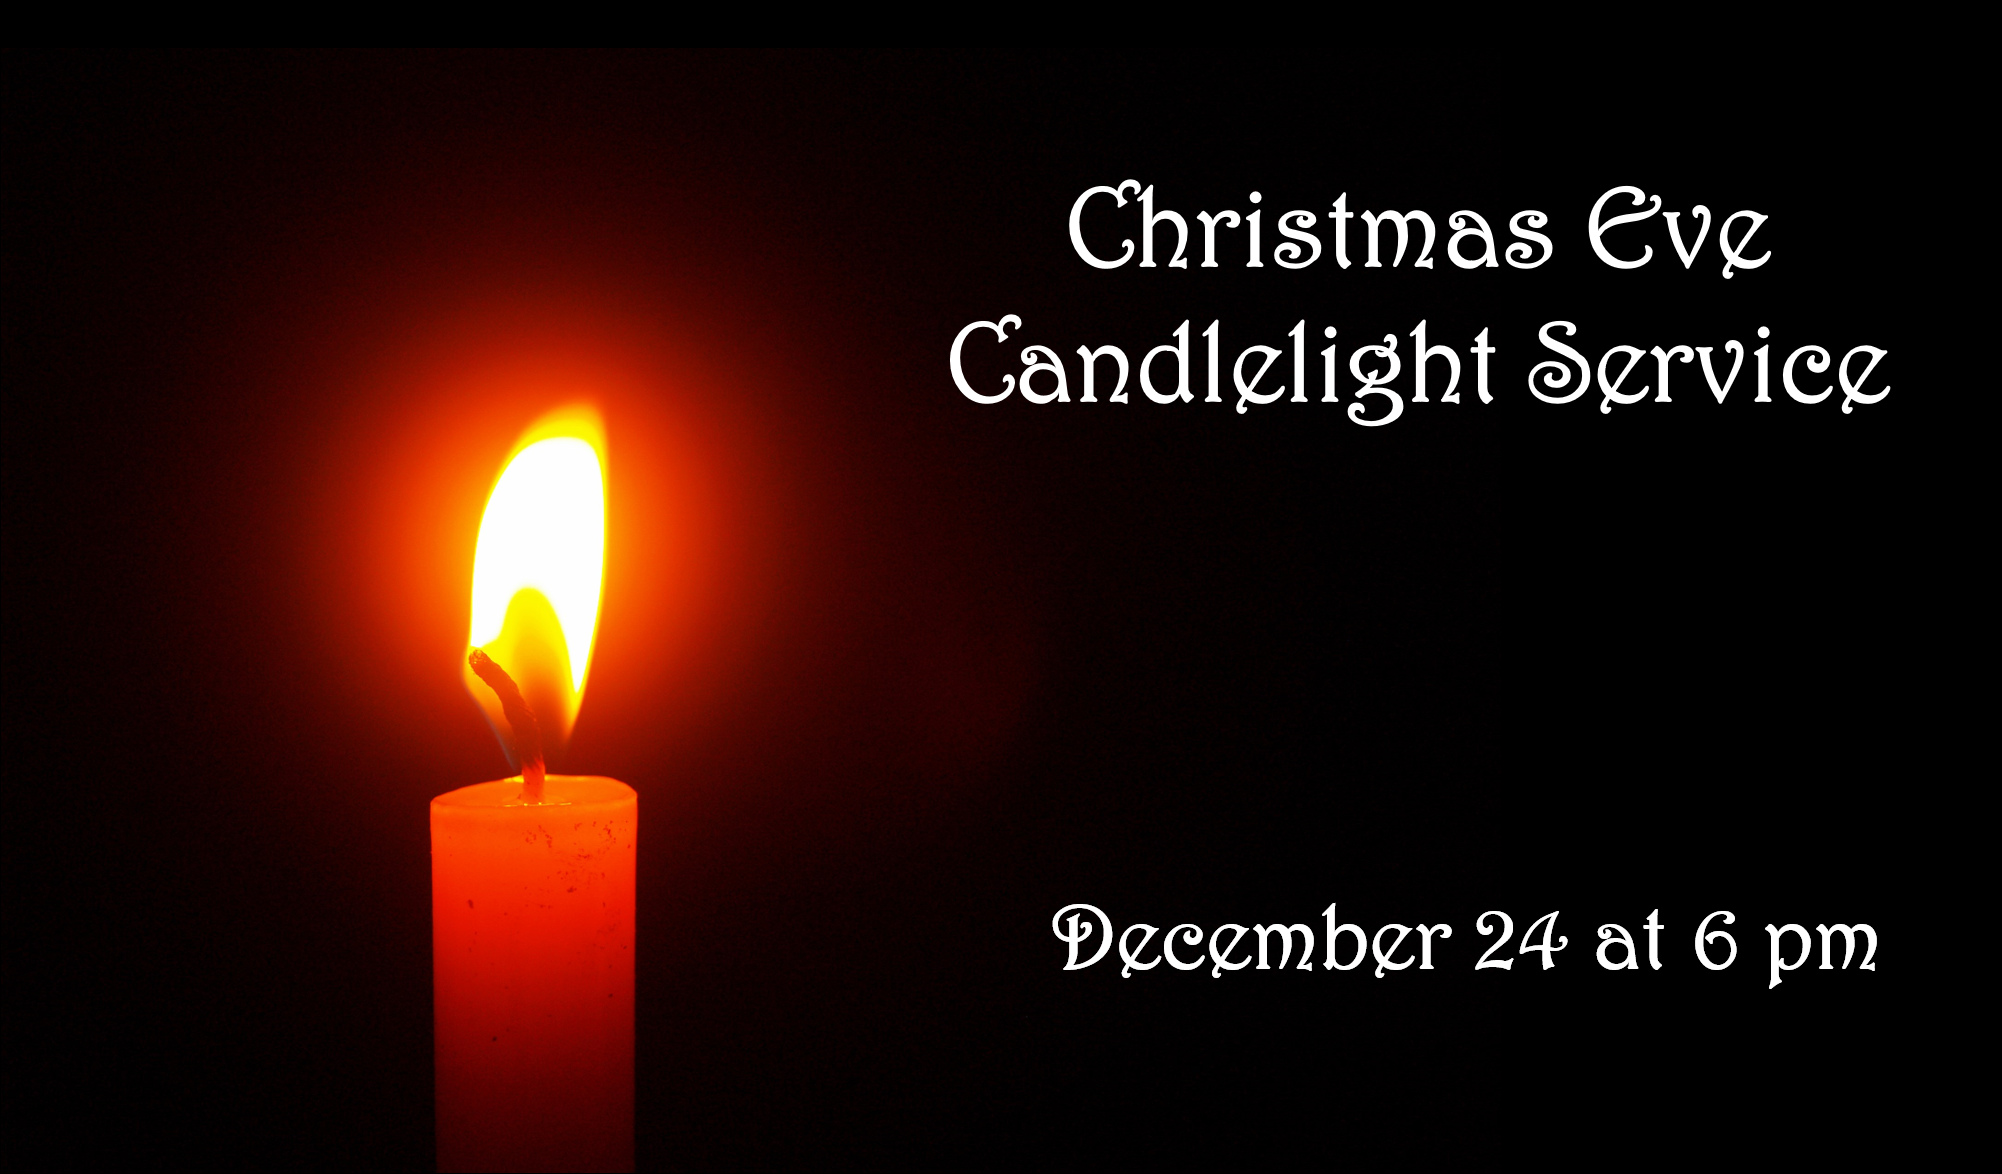 This year we will combine our Christmas Eve candlelight service with our weekend service and have ONE service at 6:00 PM on Christmas Eve. (No Sunday Service.)   Join us as we celebrate the birth of our Savior. There will be Christmas carols, worship, scripture reading and more culminating in the lighting of candles. Nursery will be available.